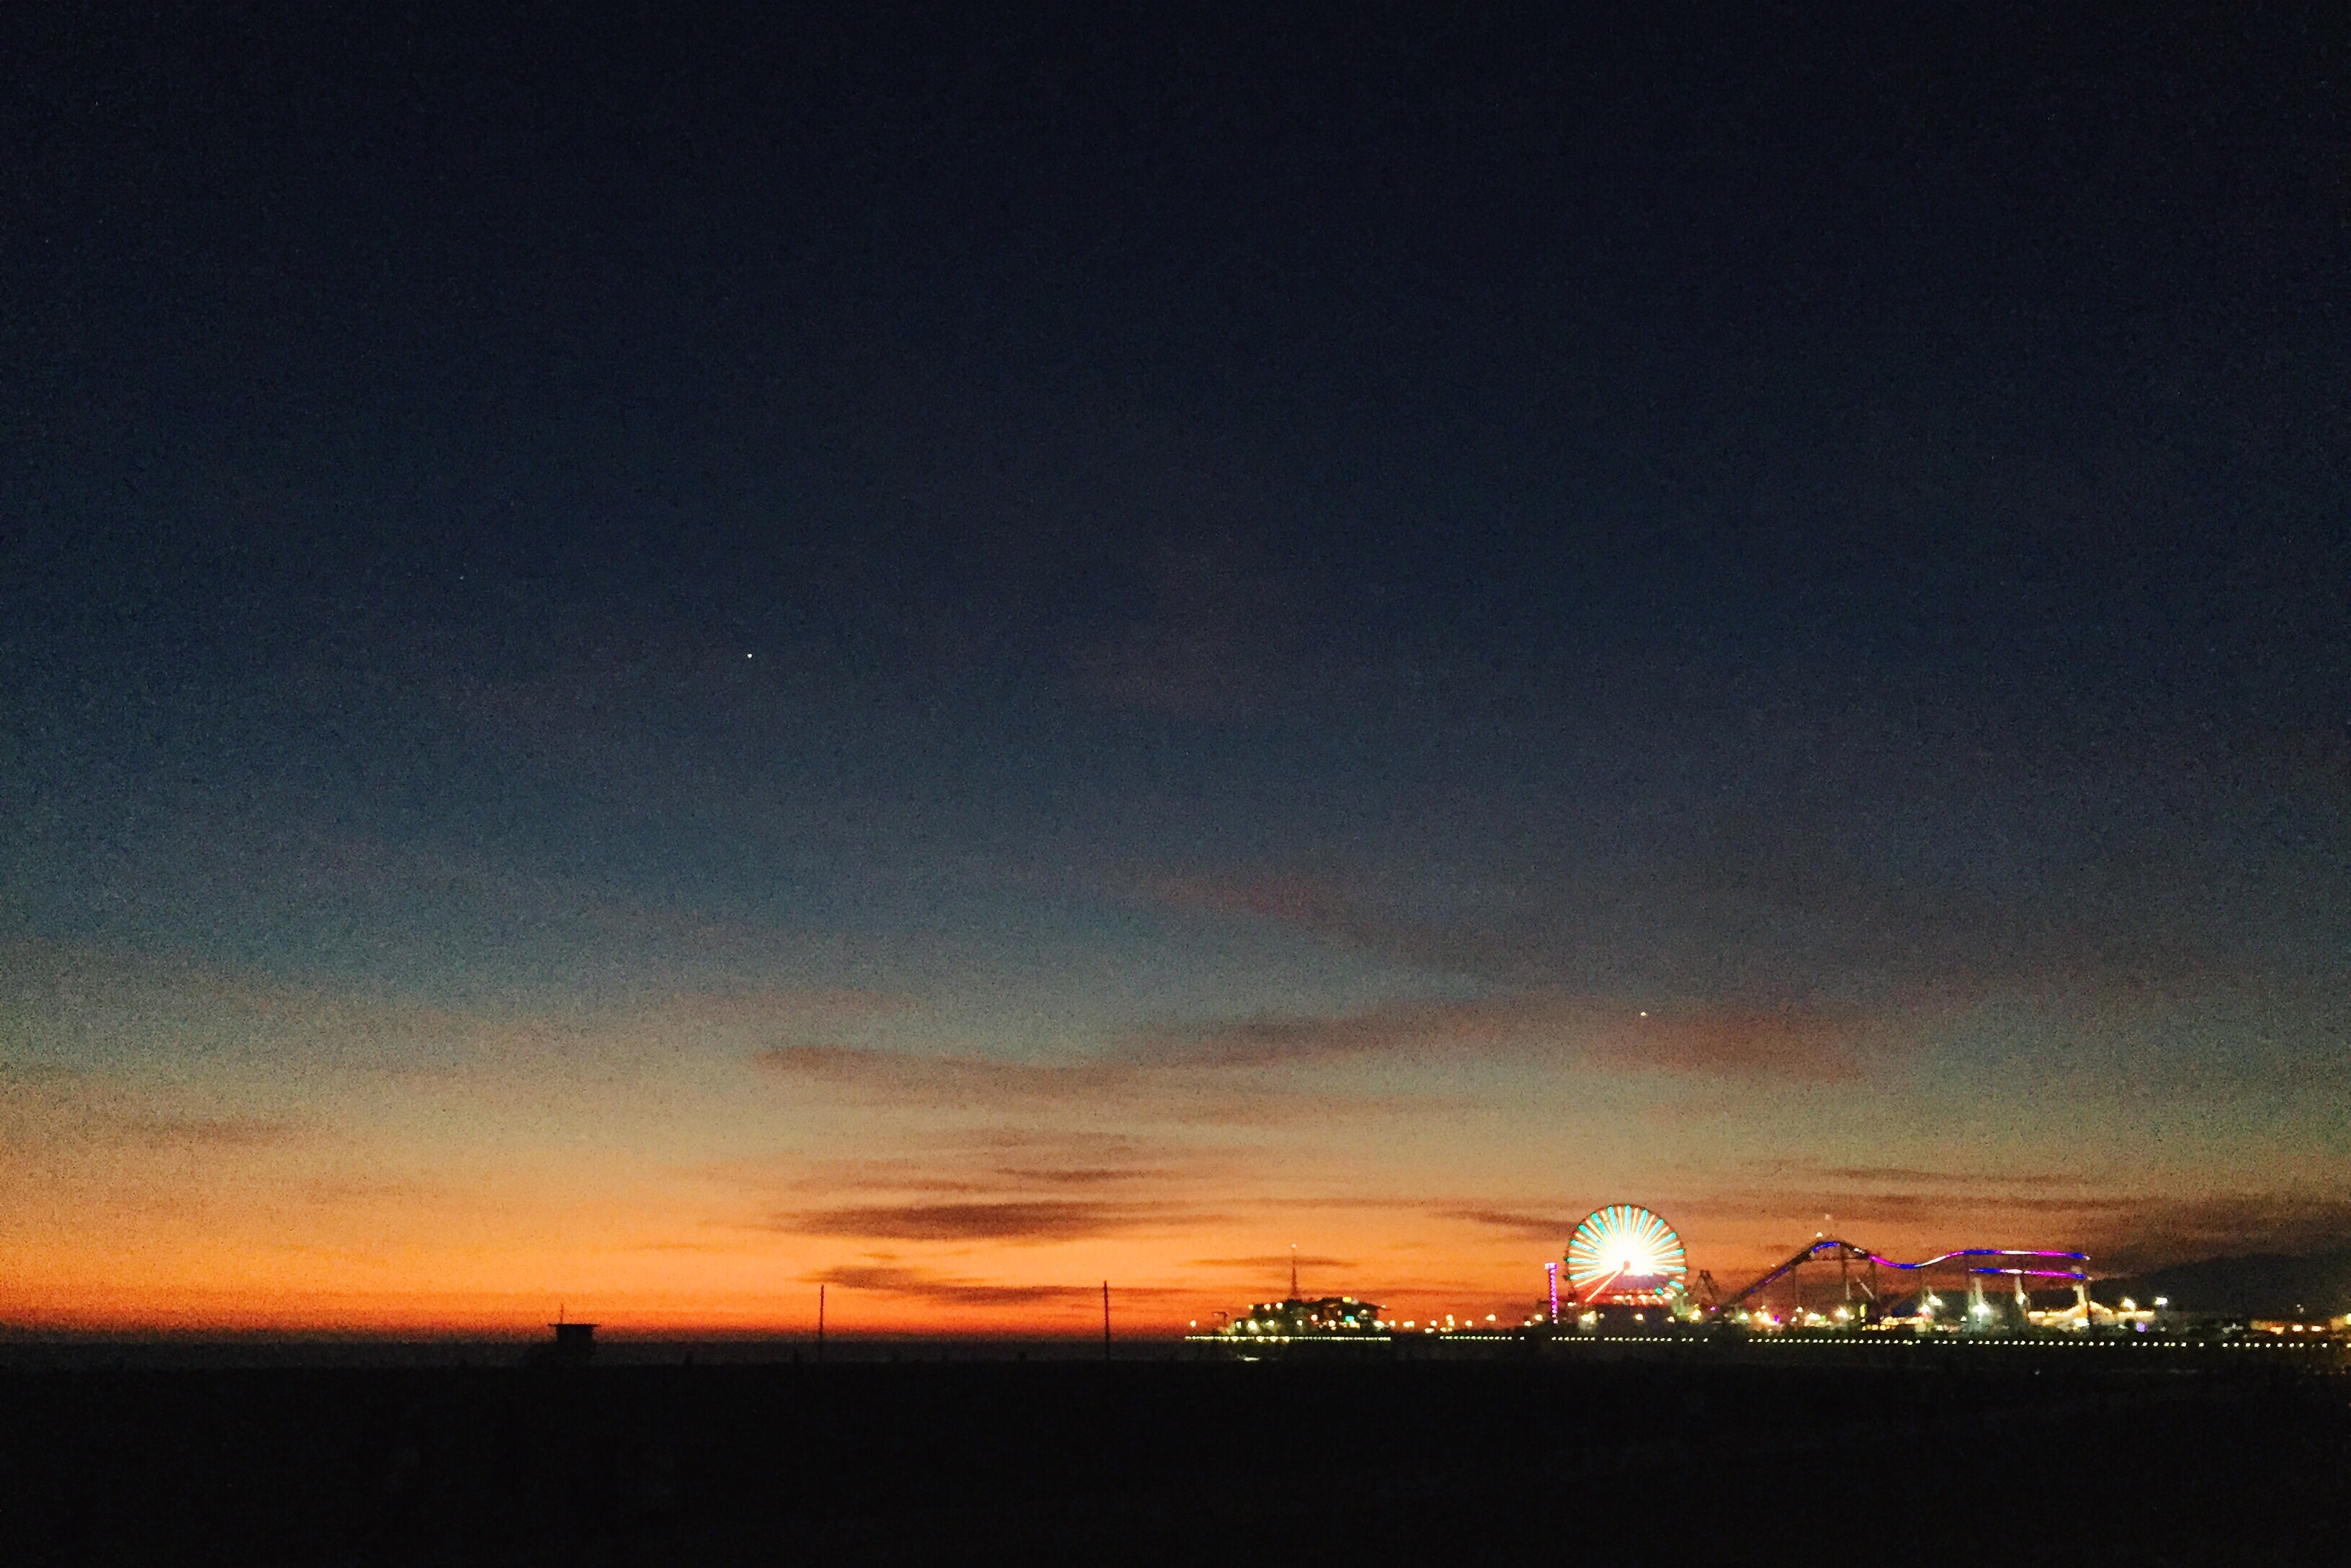 The Santa Monica Pier at sunset last Sunday. Not shown: mind-altering gridlock in DT SaMo. Photo by Steve Hymon.